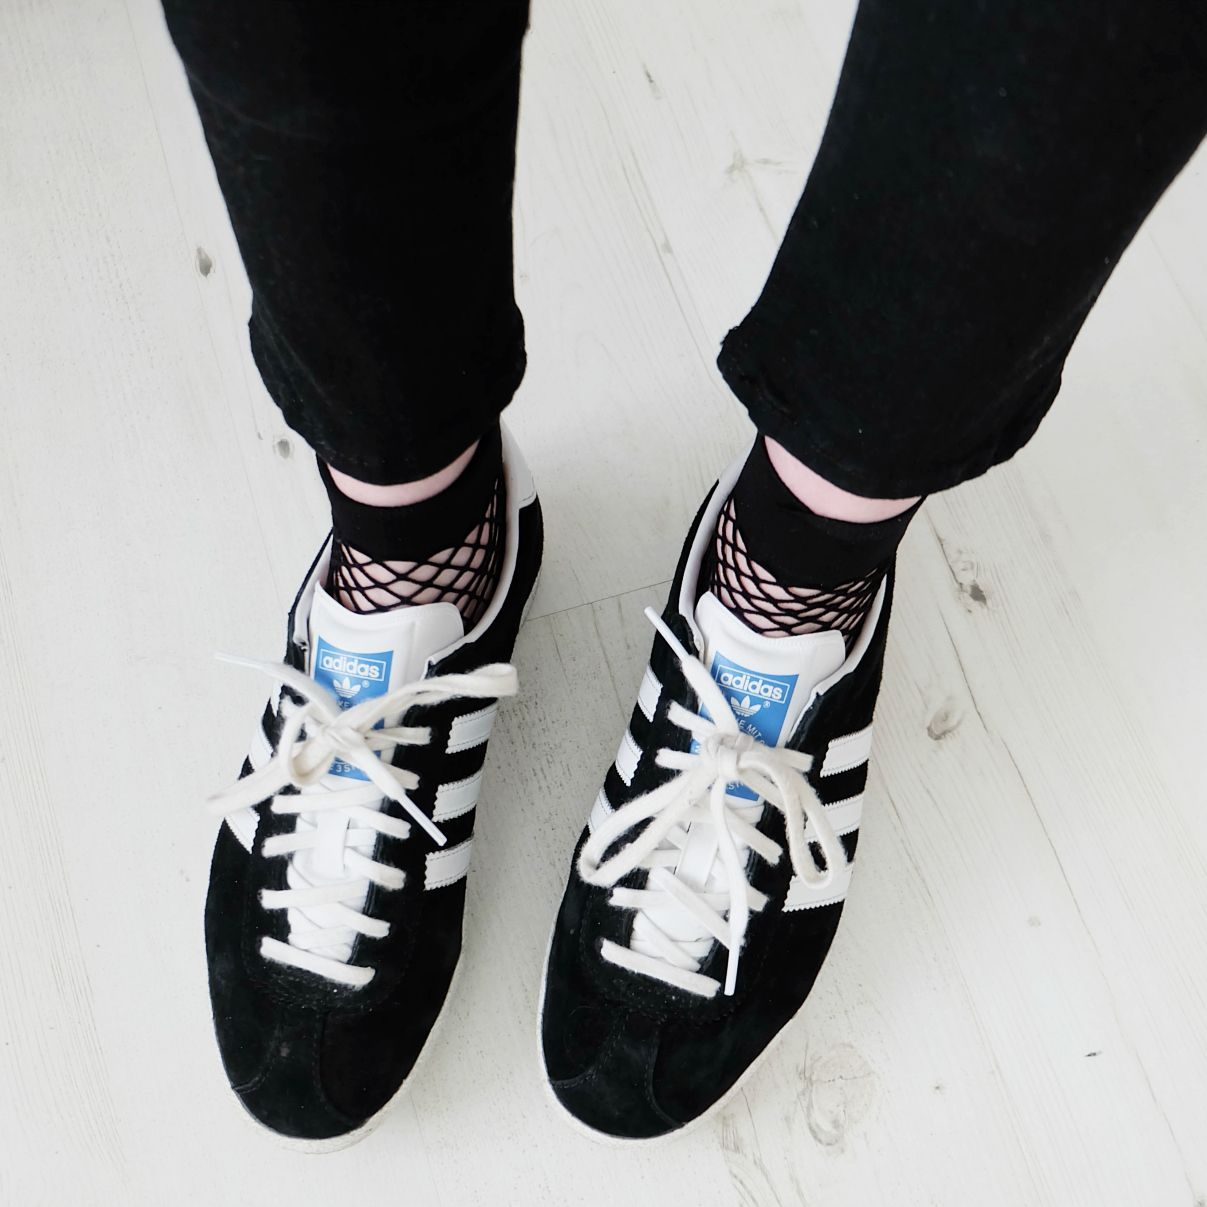 Adidas gazelle °° fishnet socks | Outfits adidas, Gazelle